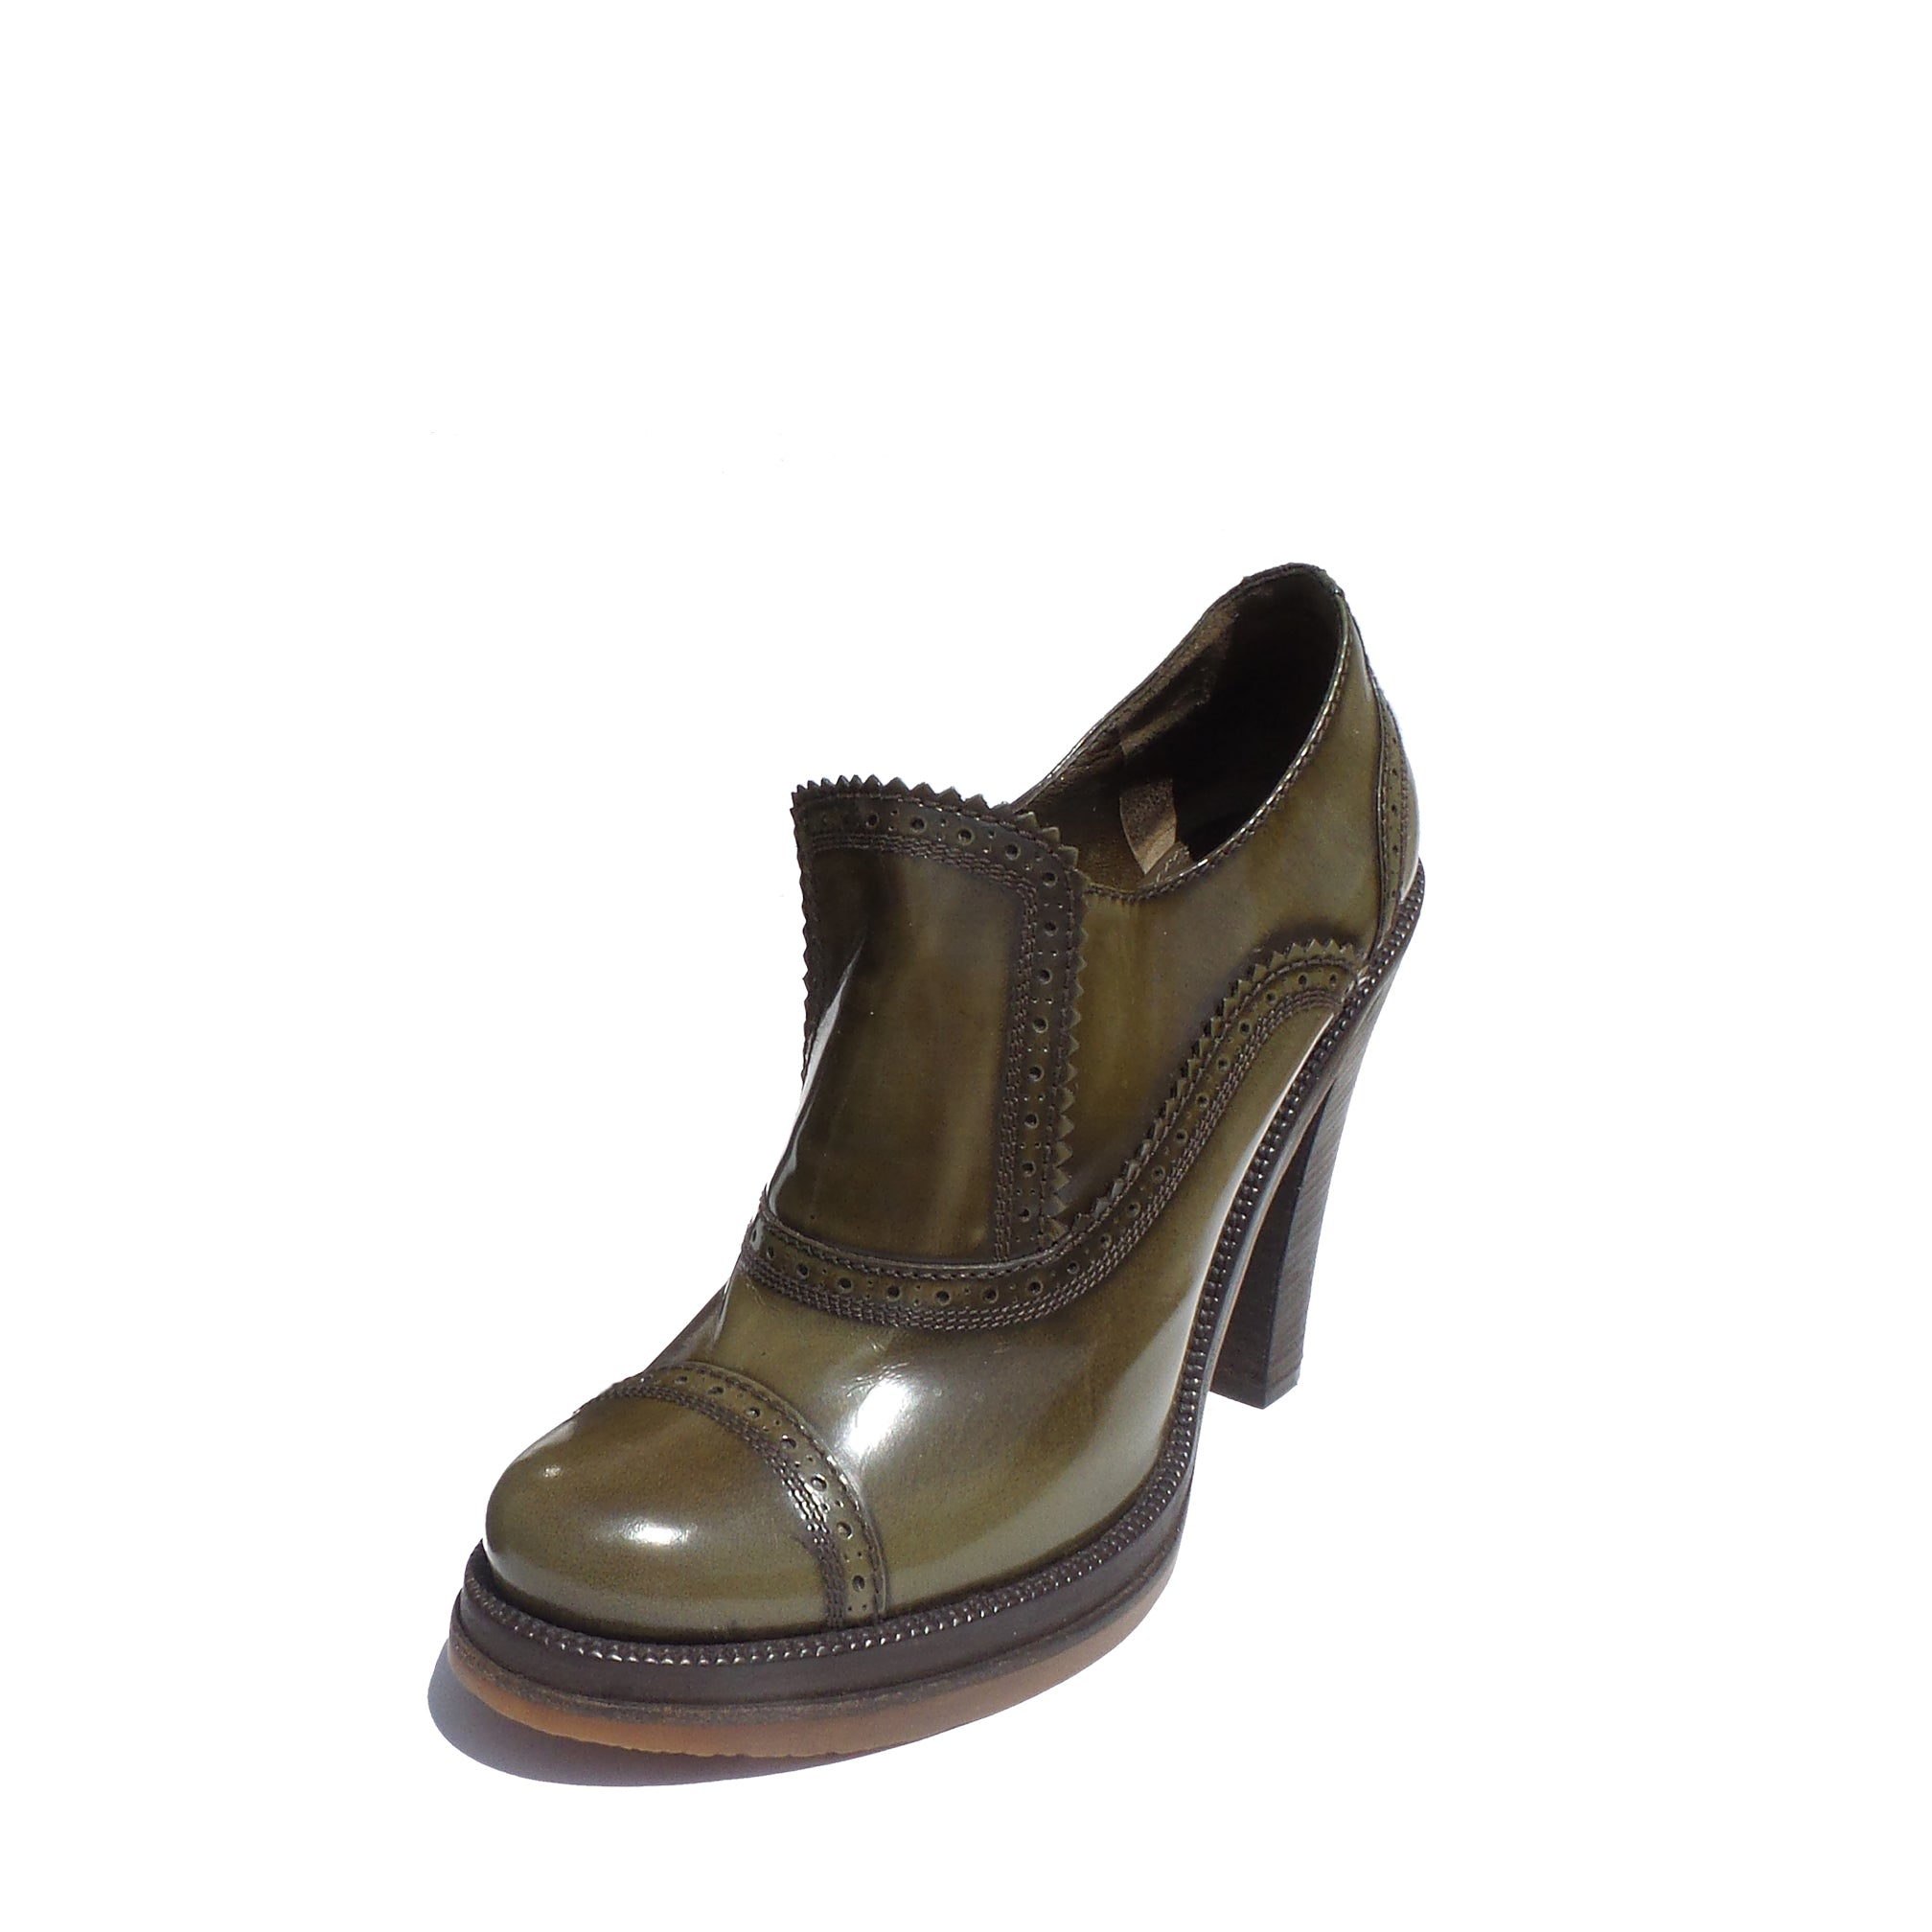 LOUIS VUITTON Olive Green Polished Leather Block Heel Platform Bootie Pumps 39.5